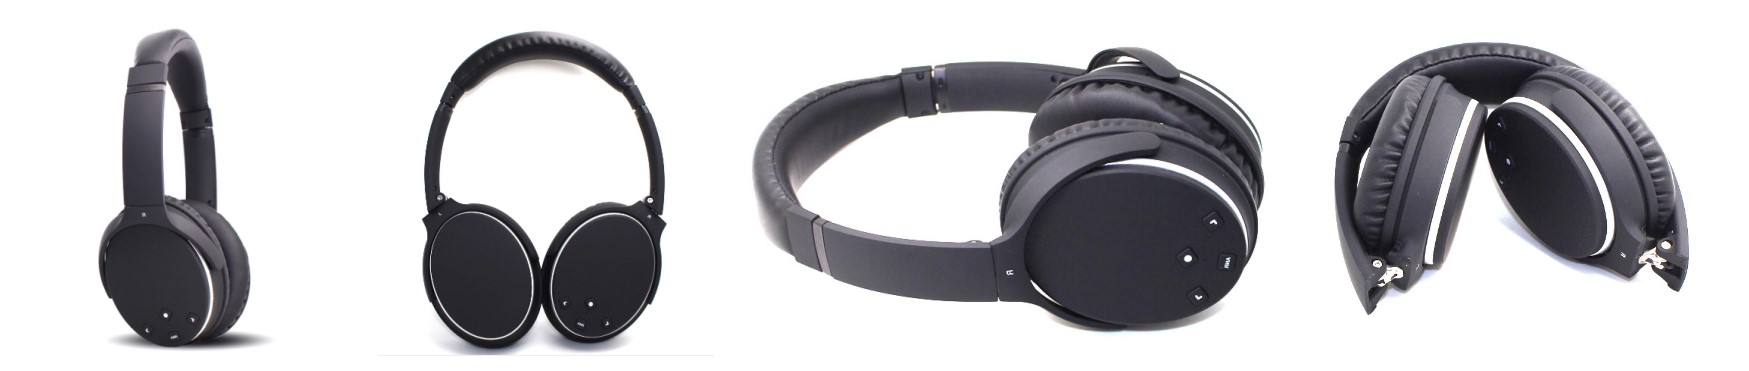 Noise Cancelling Bluetooth Headphones-1